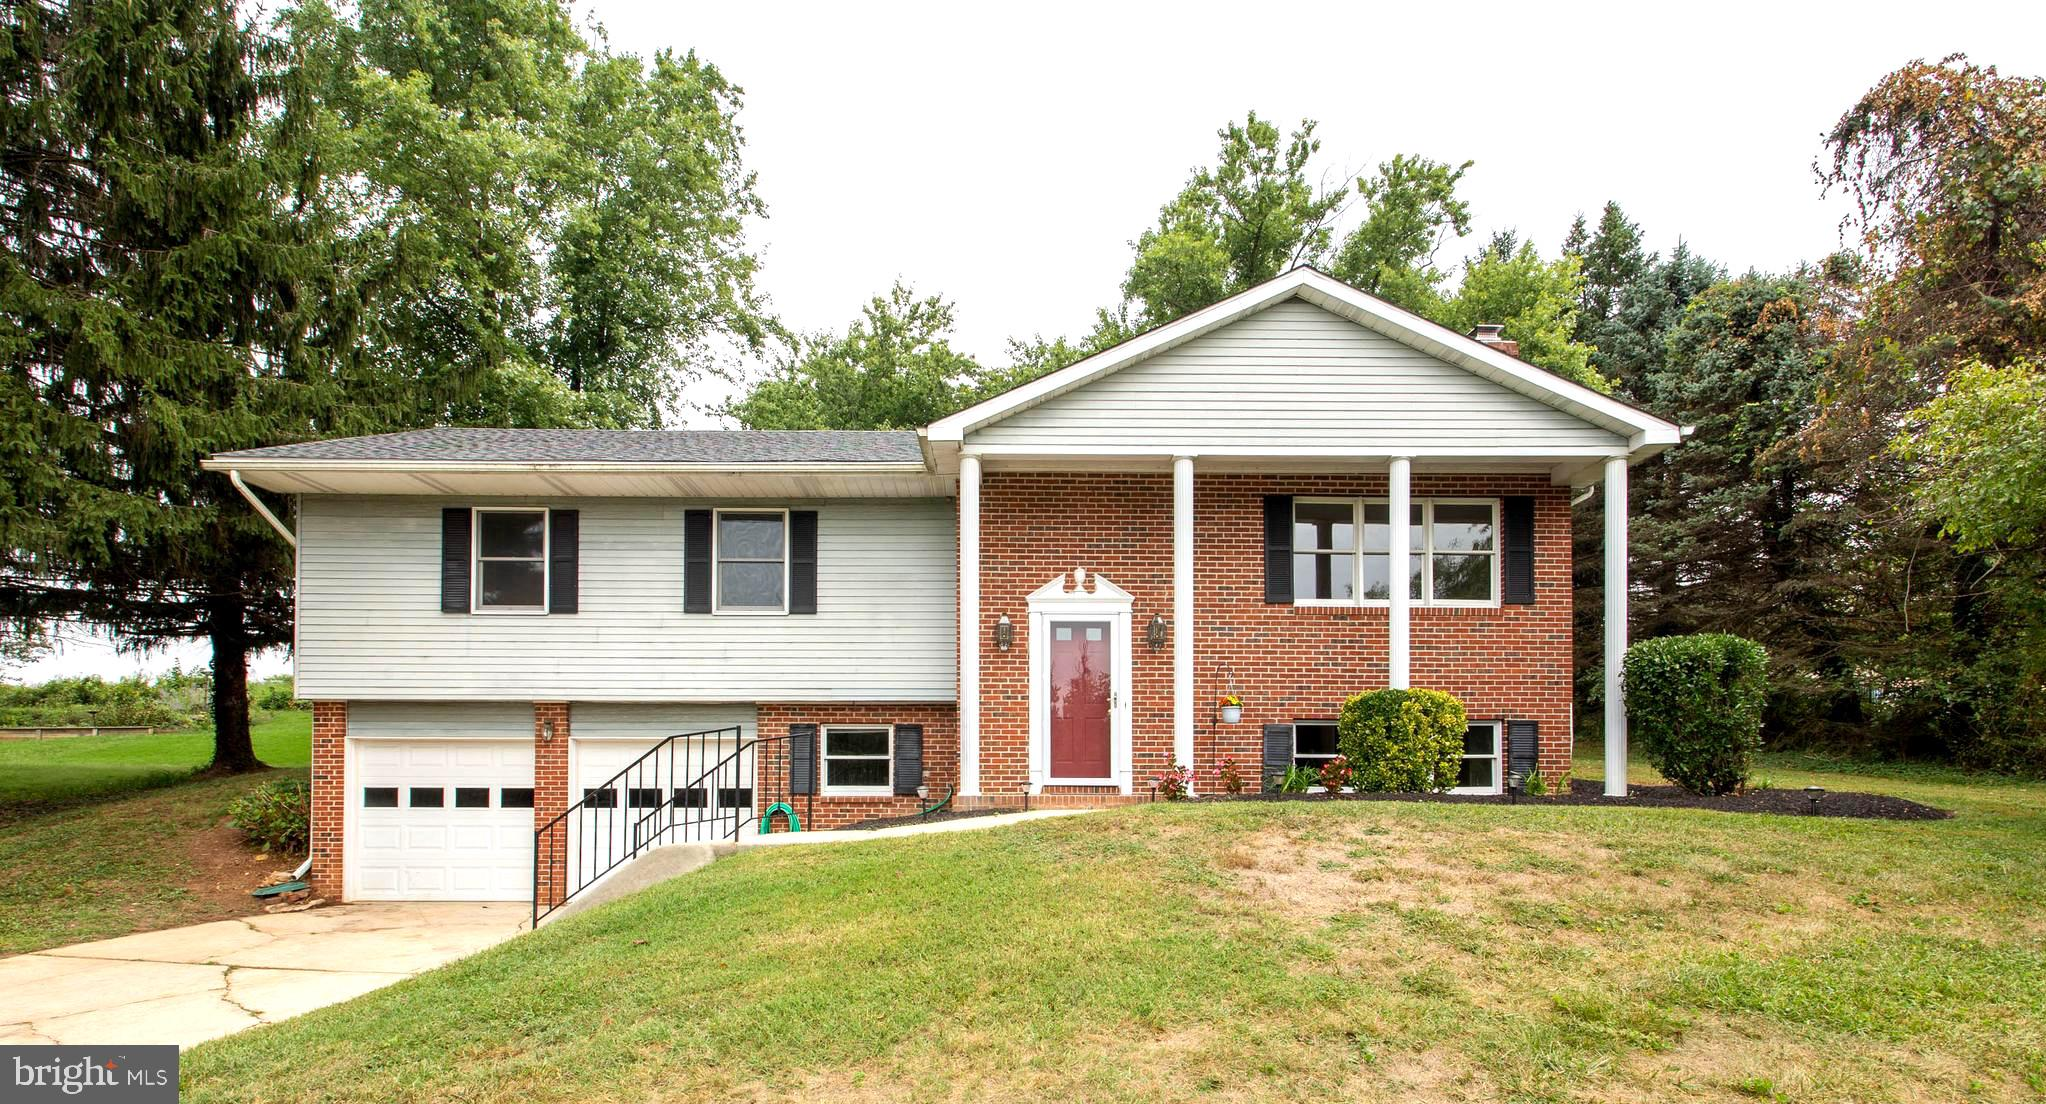 Great four bedroom 2.5 bath home situated on .44 acres in Fallston school district! This home featur